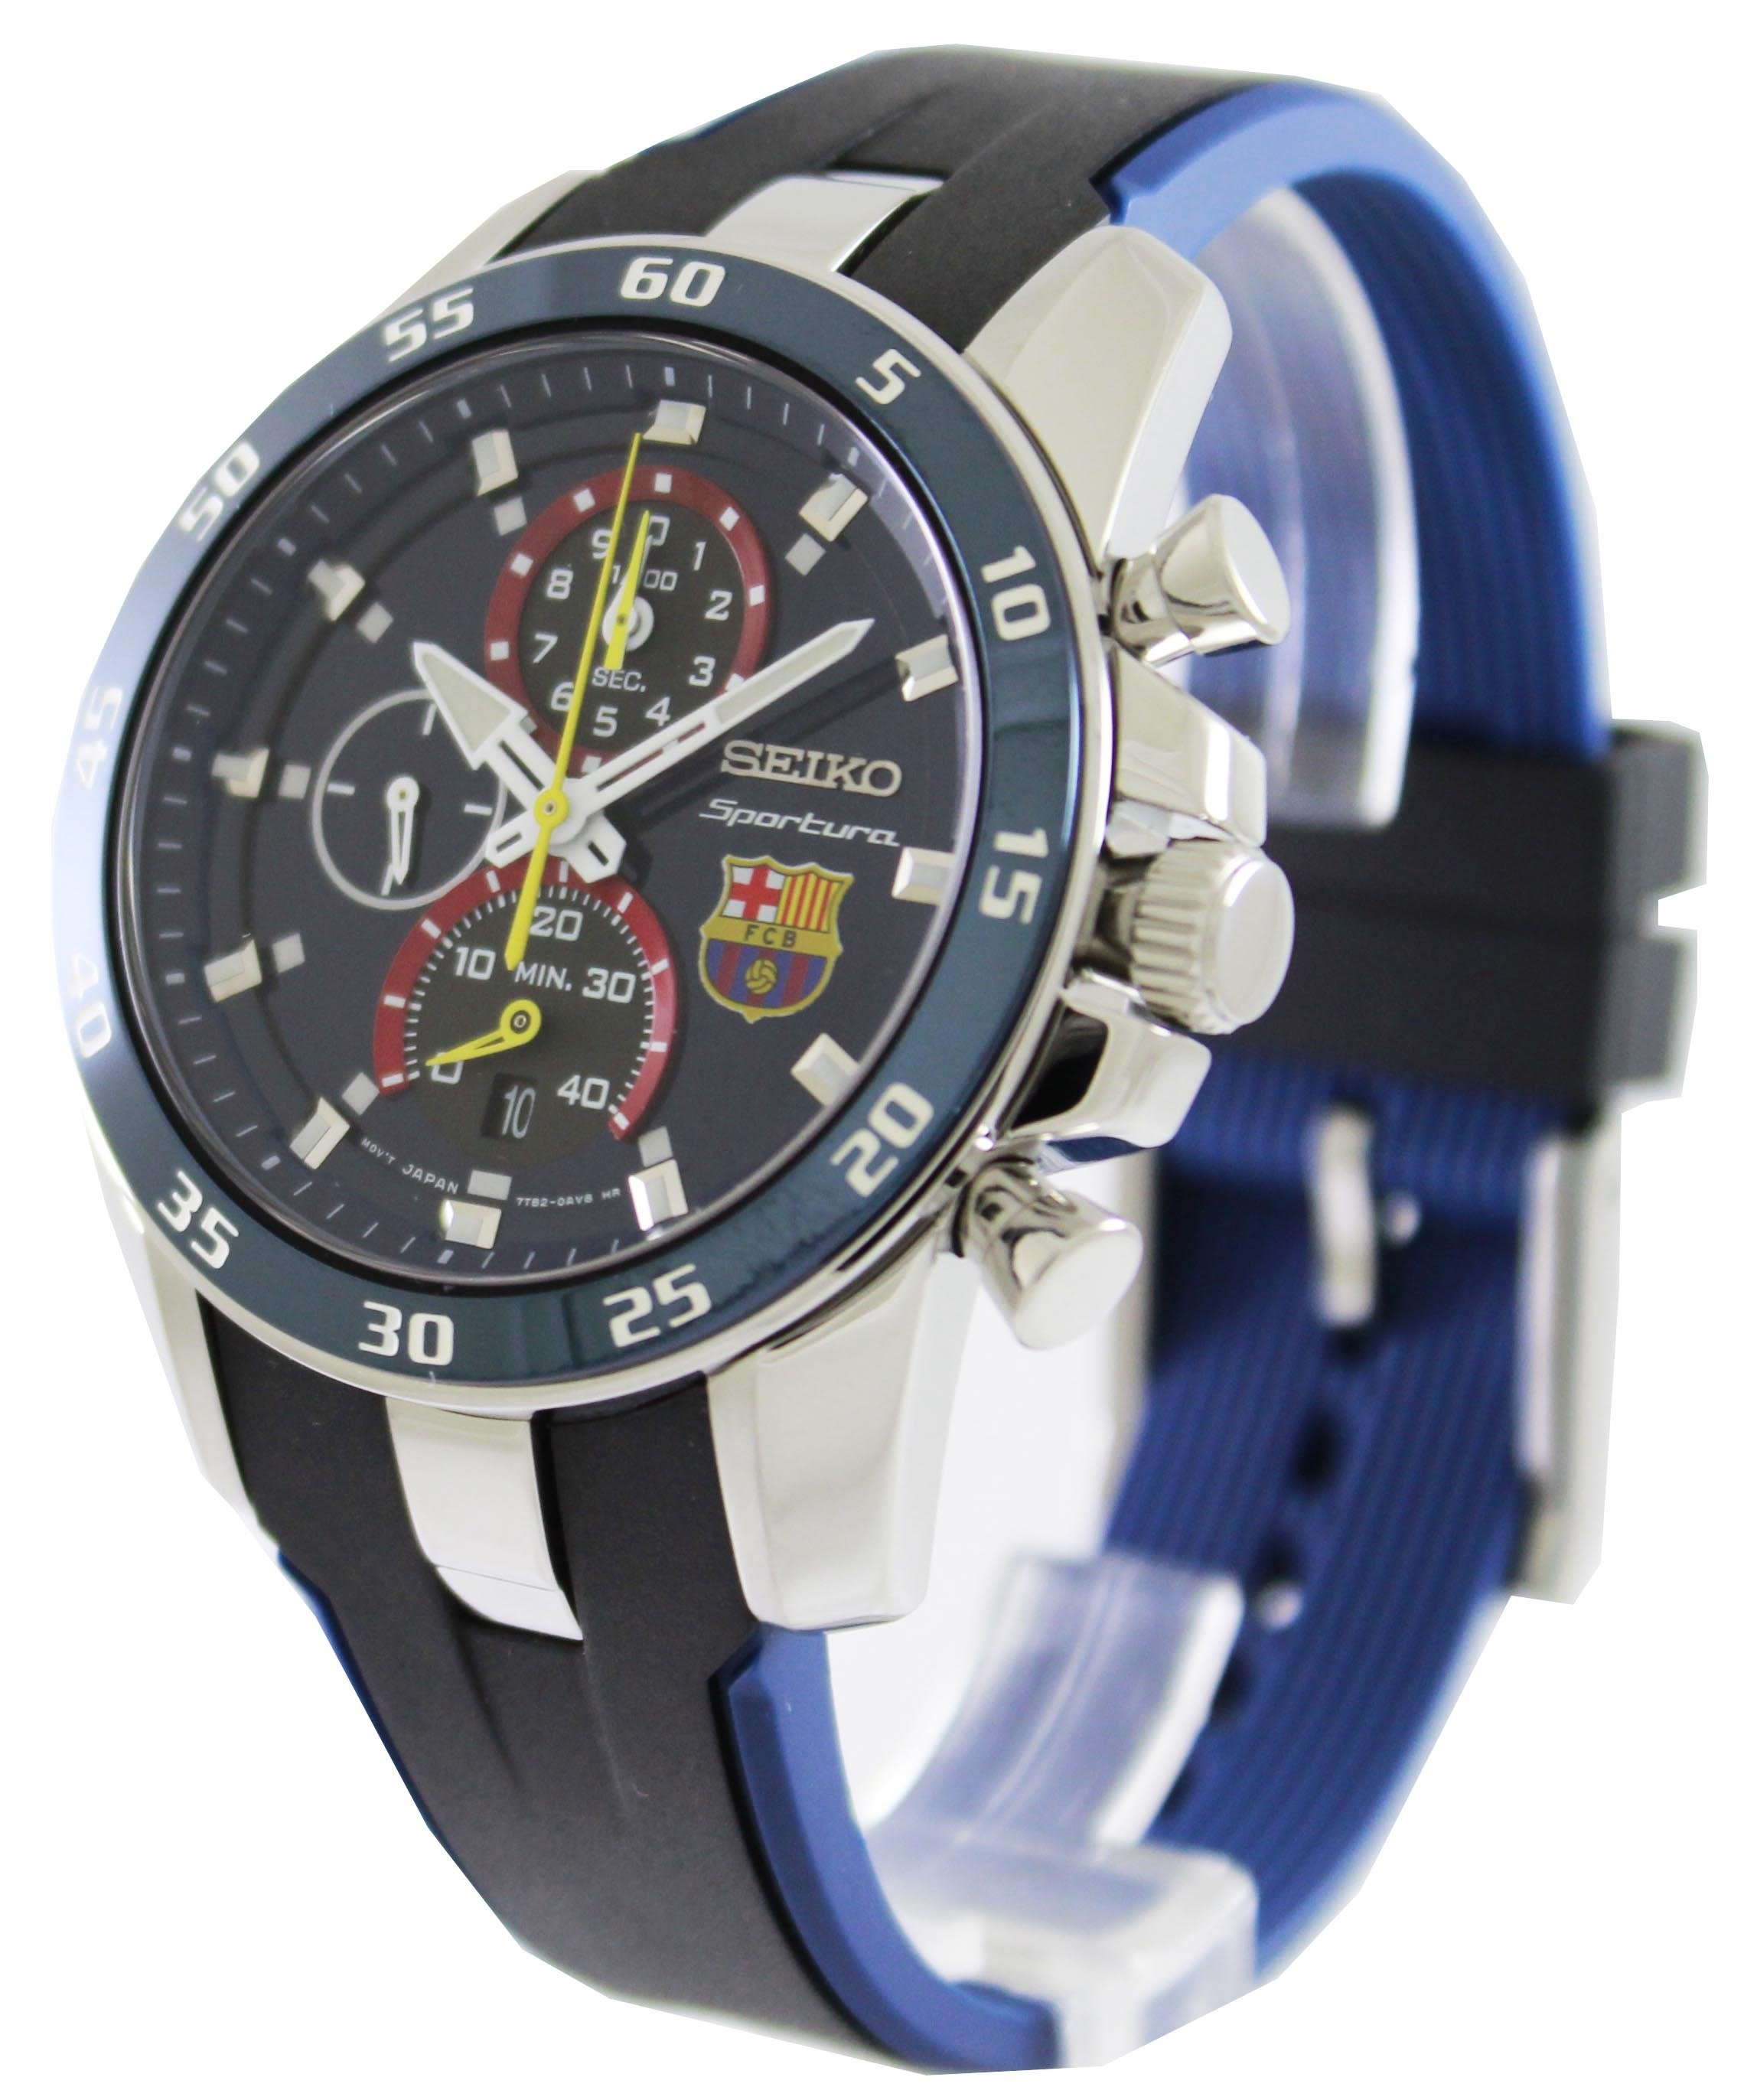 Seiko Sportura Snae79p1 Chronograph Black Leather Jam Tangan Pria Mens Skz285k1 Skz285 Stainless Automatic Snae75p1 Fc Barcelona Watch Features A 44mm Wide And 12mm Thick Solid